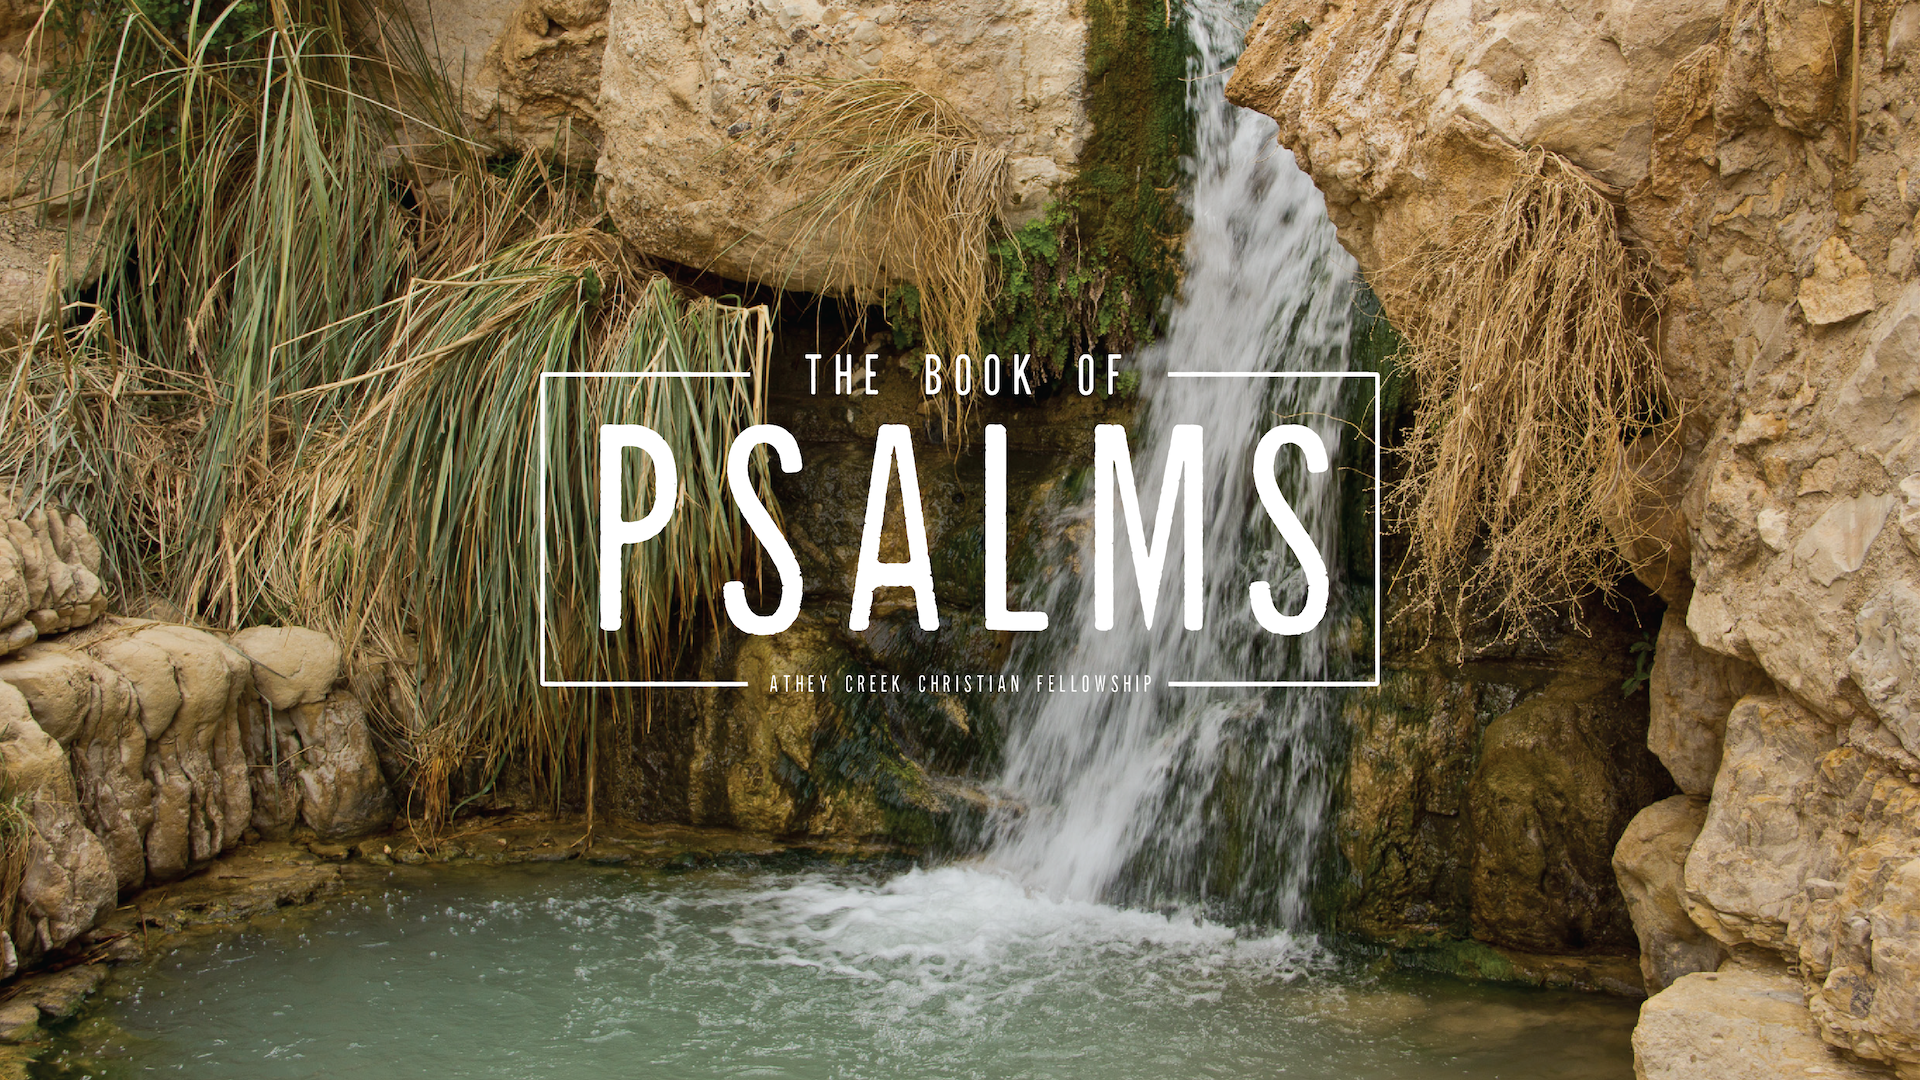 Poster forThrough the Bible (Psalms 39-41)